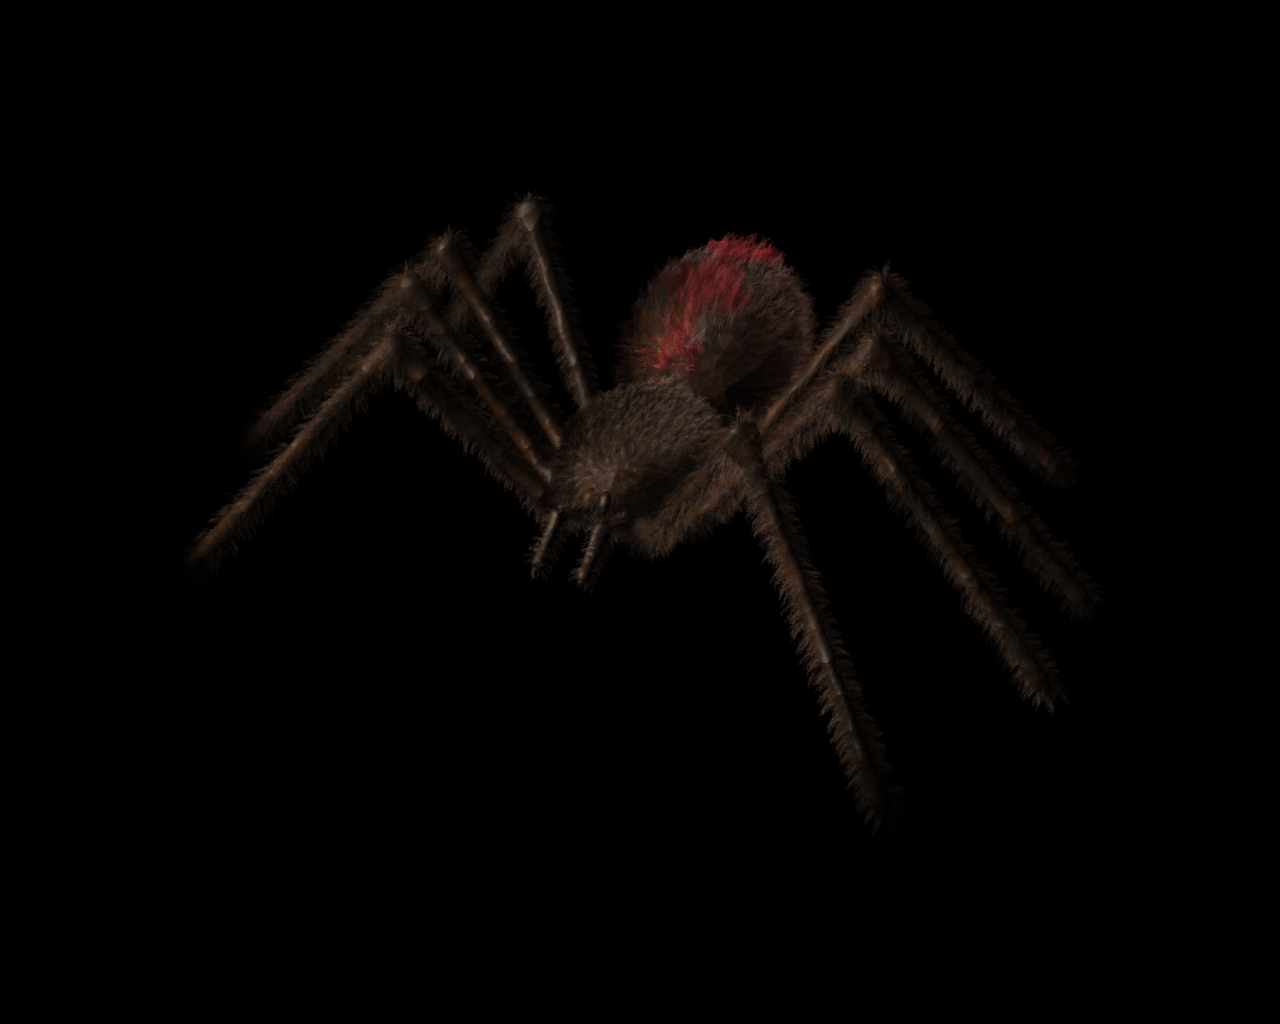 Spider by someoneelse6